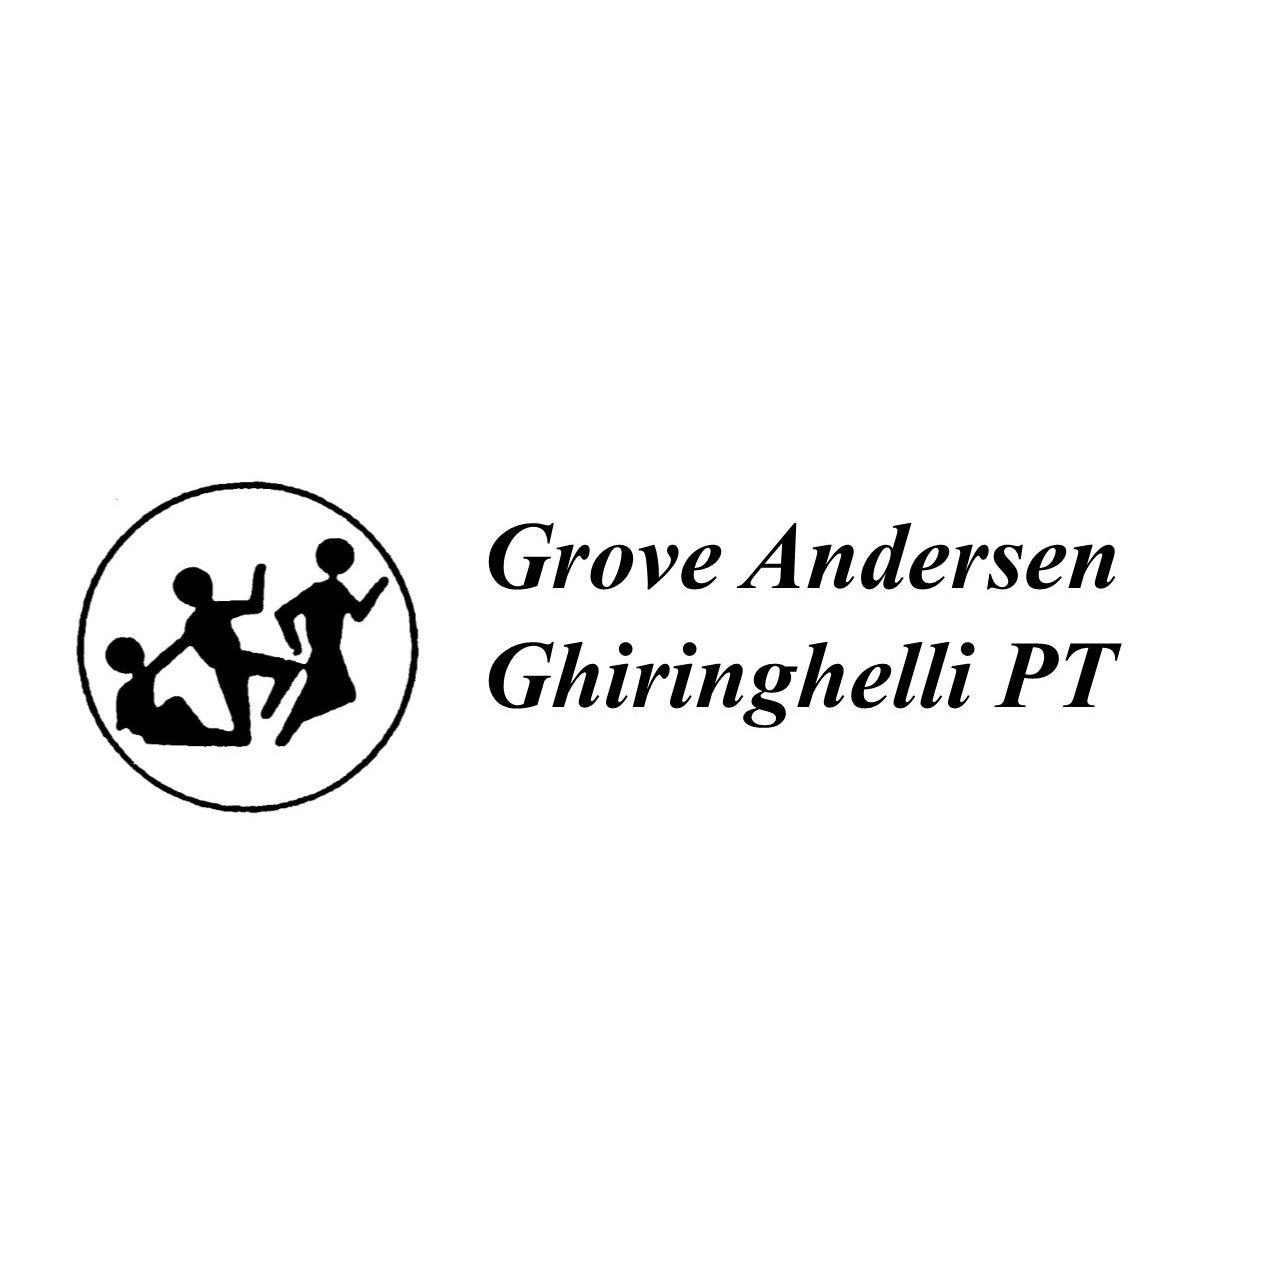 Grove Andersen Ghiringhelli Physical Therapy